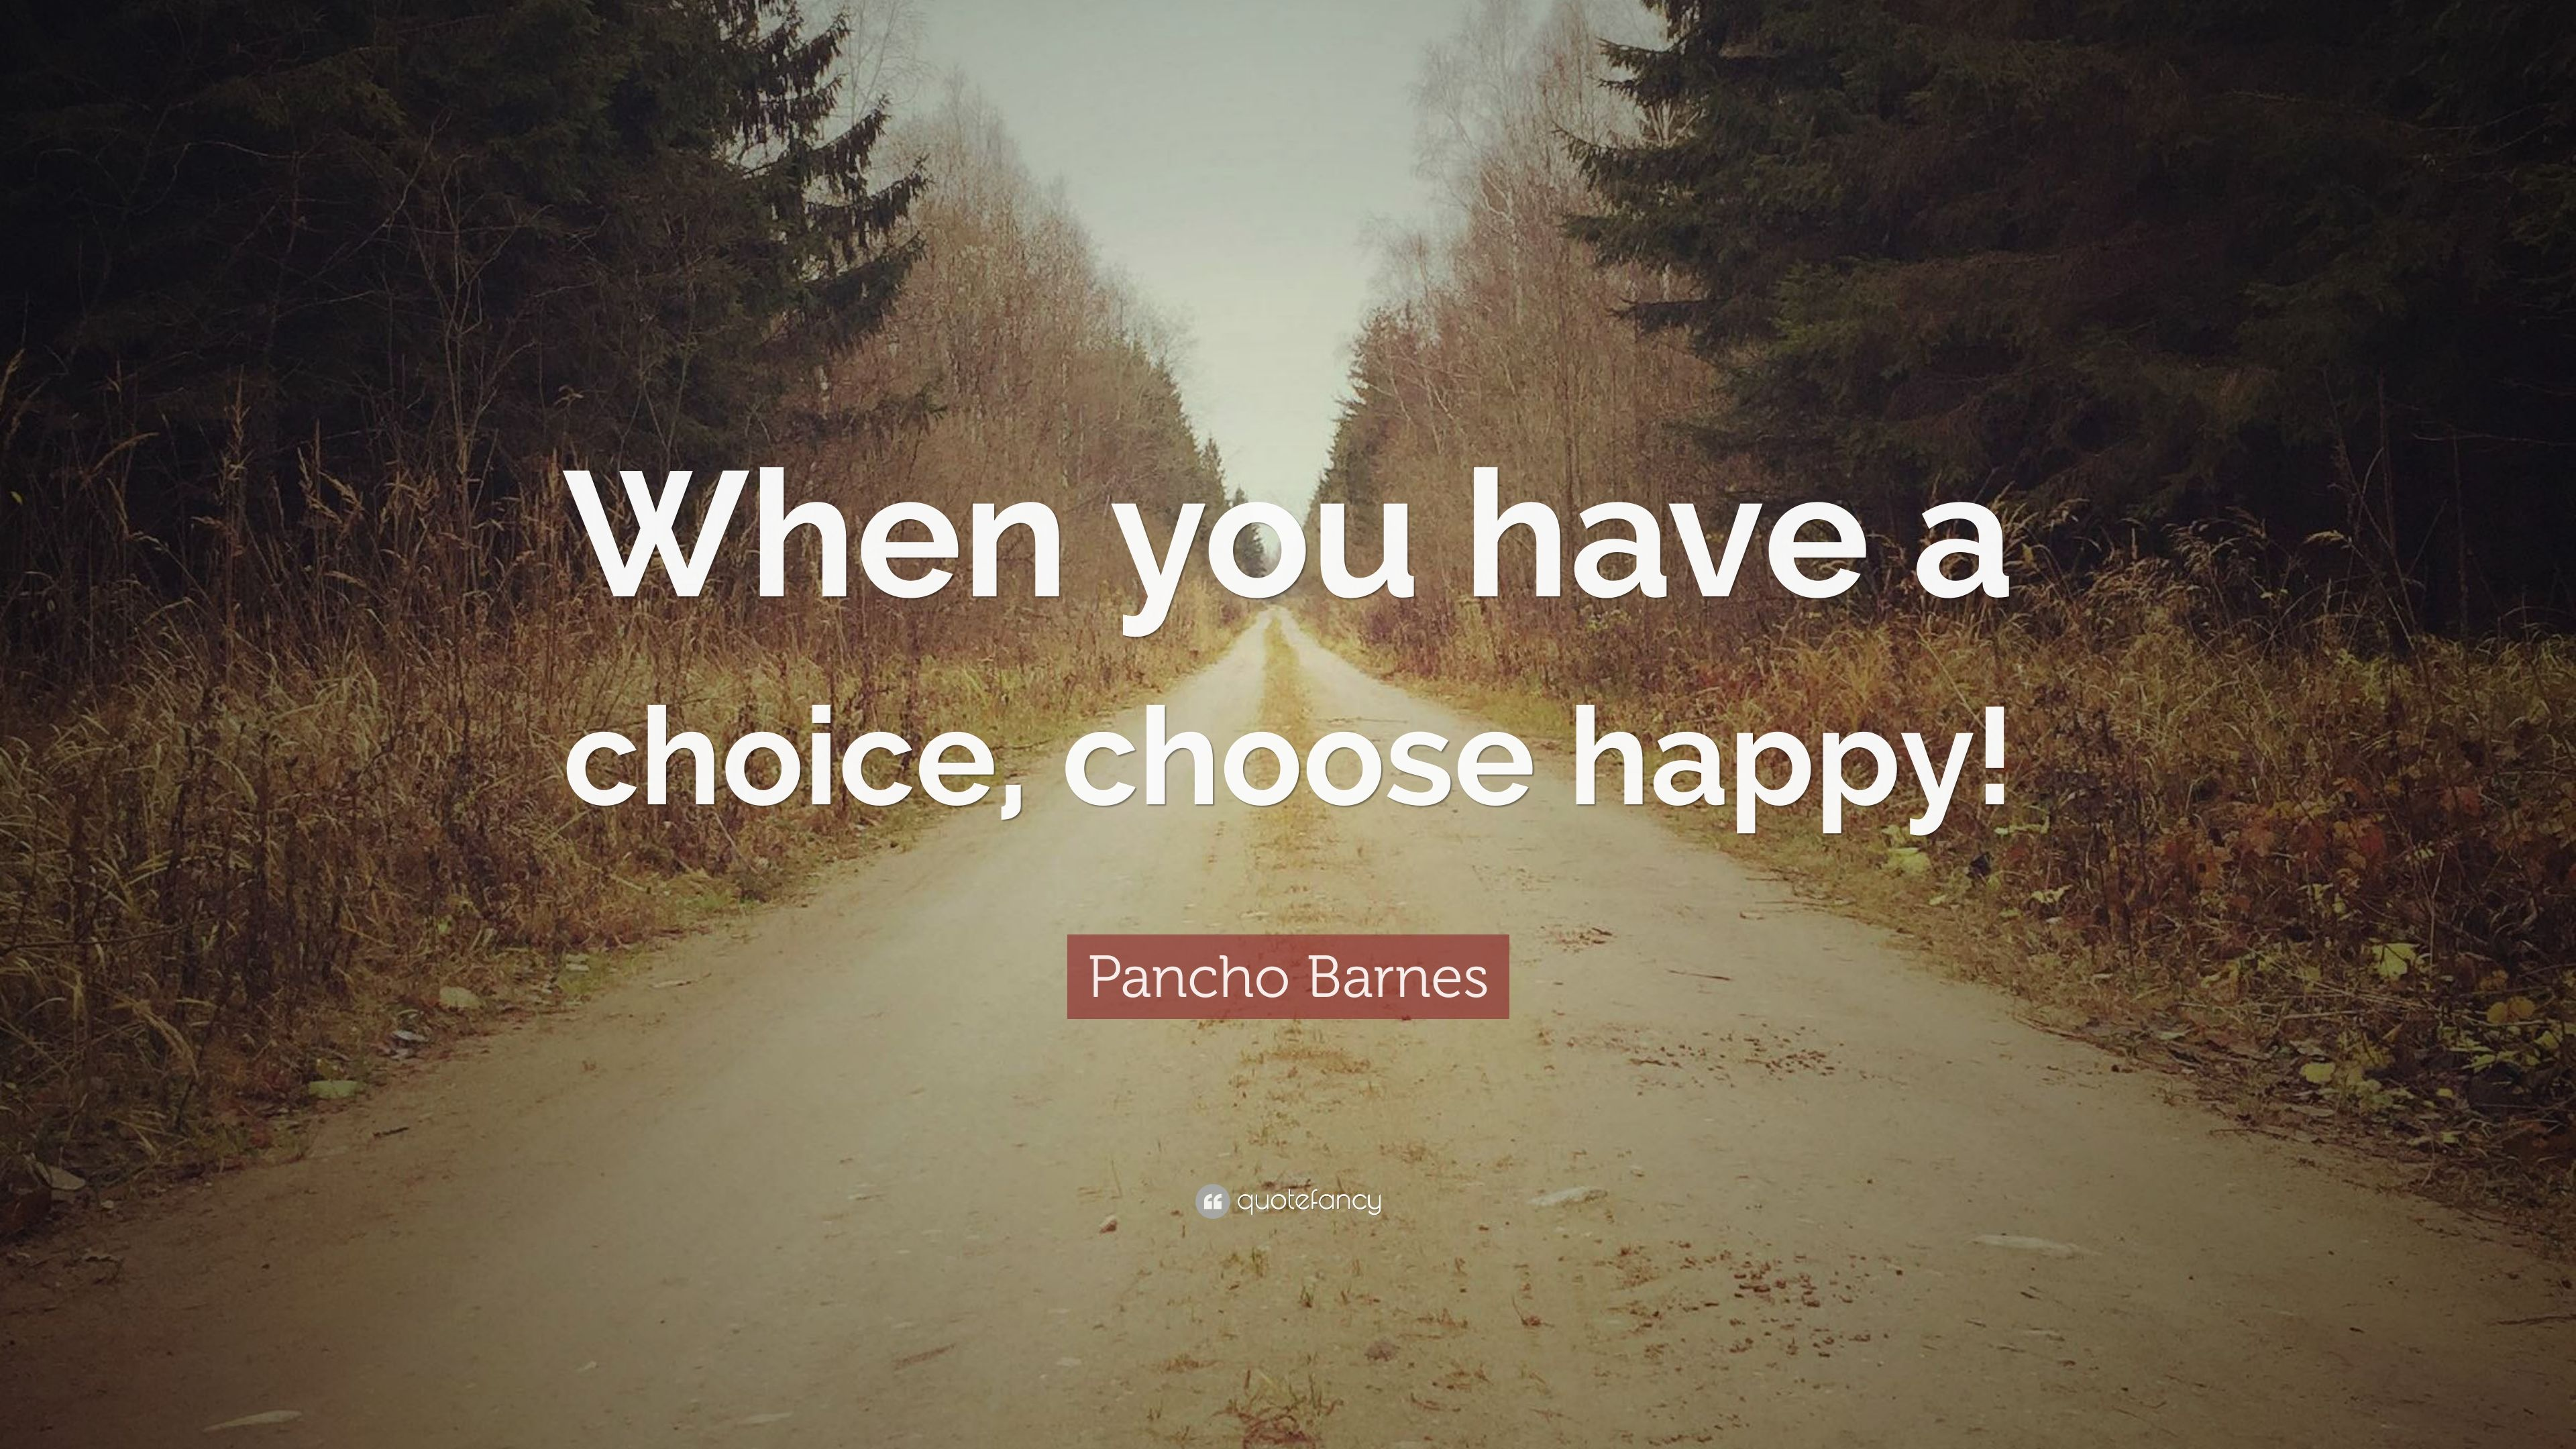 Pancho Barnes Quote: U201cWhen You Have A Choice, Choose Happy!u201d